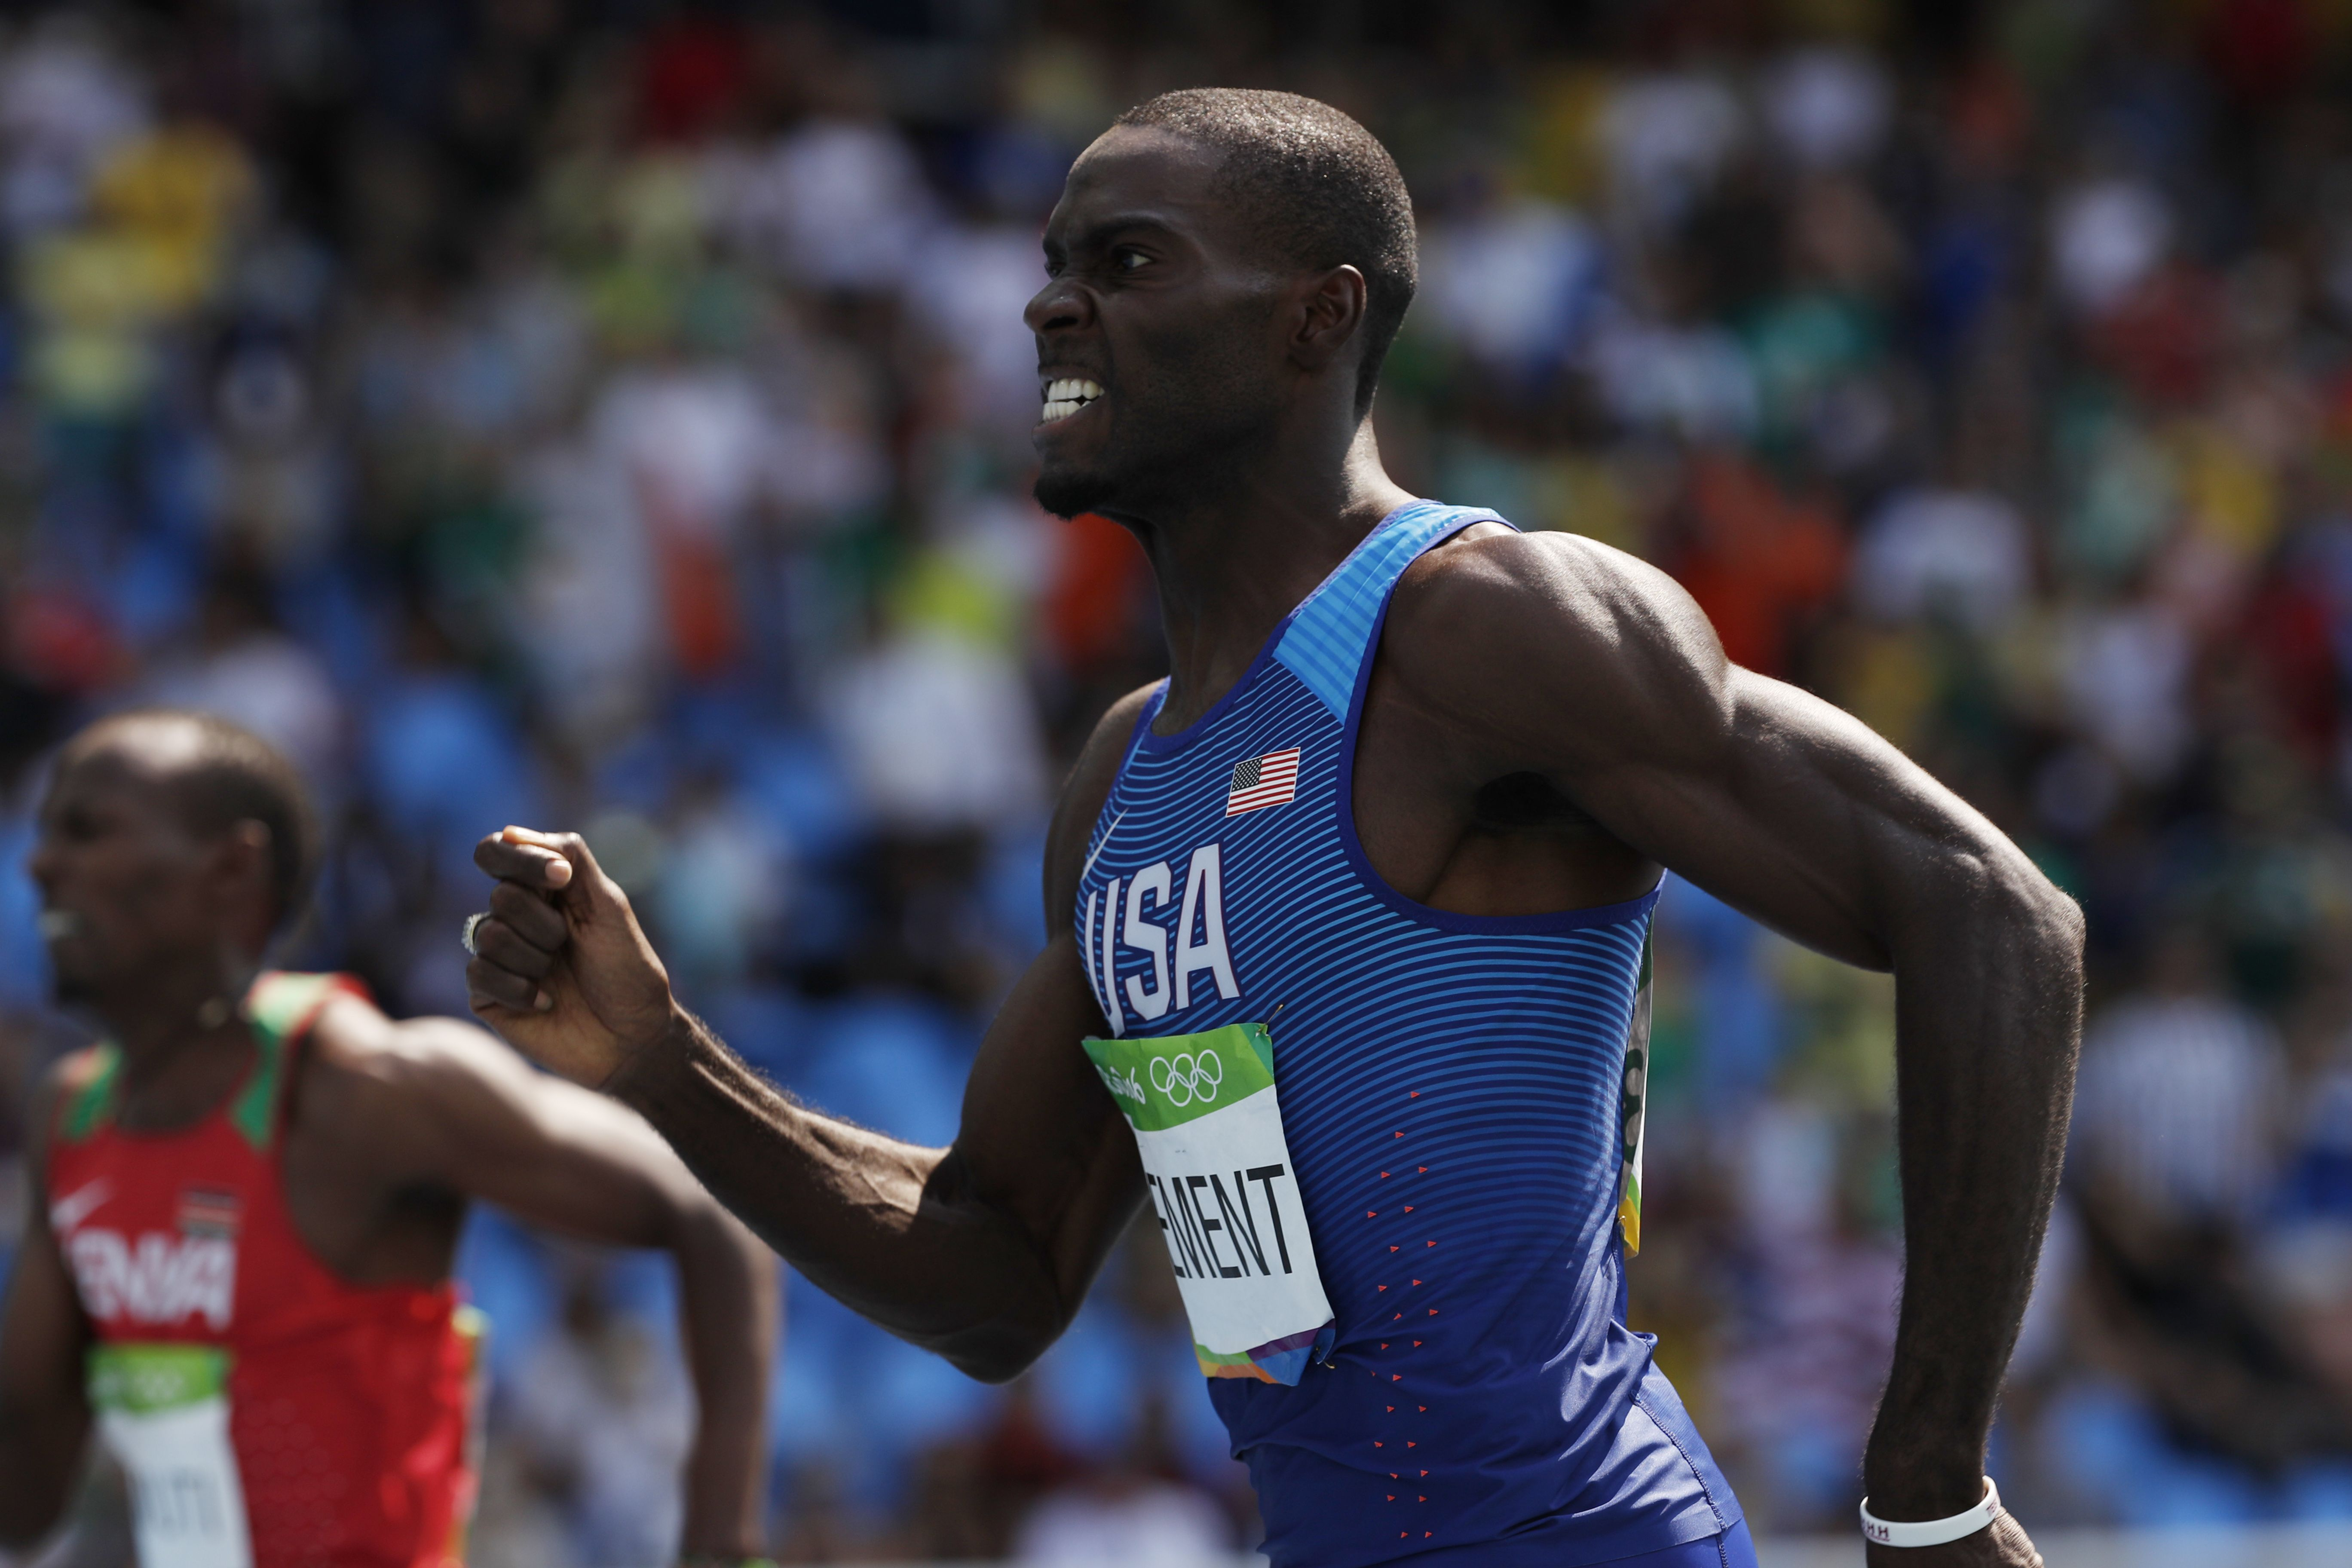 Olympic Champion Kerron Clement